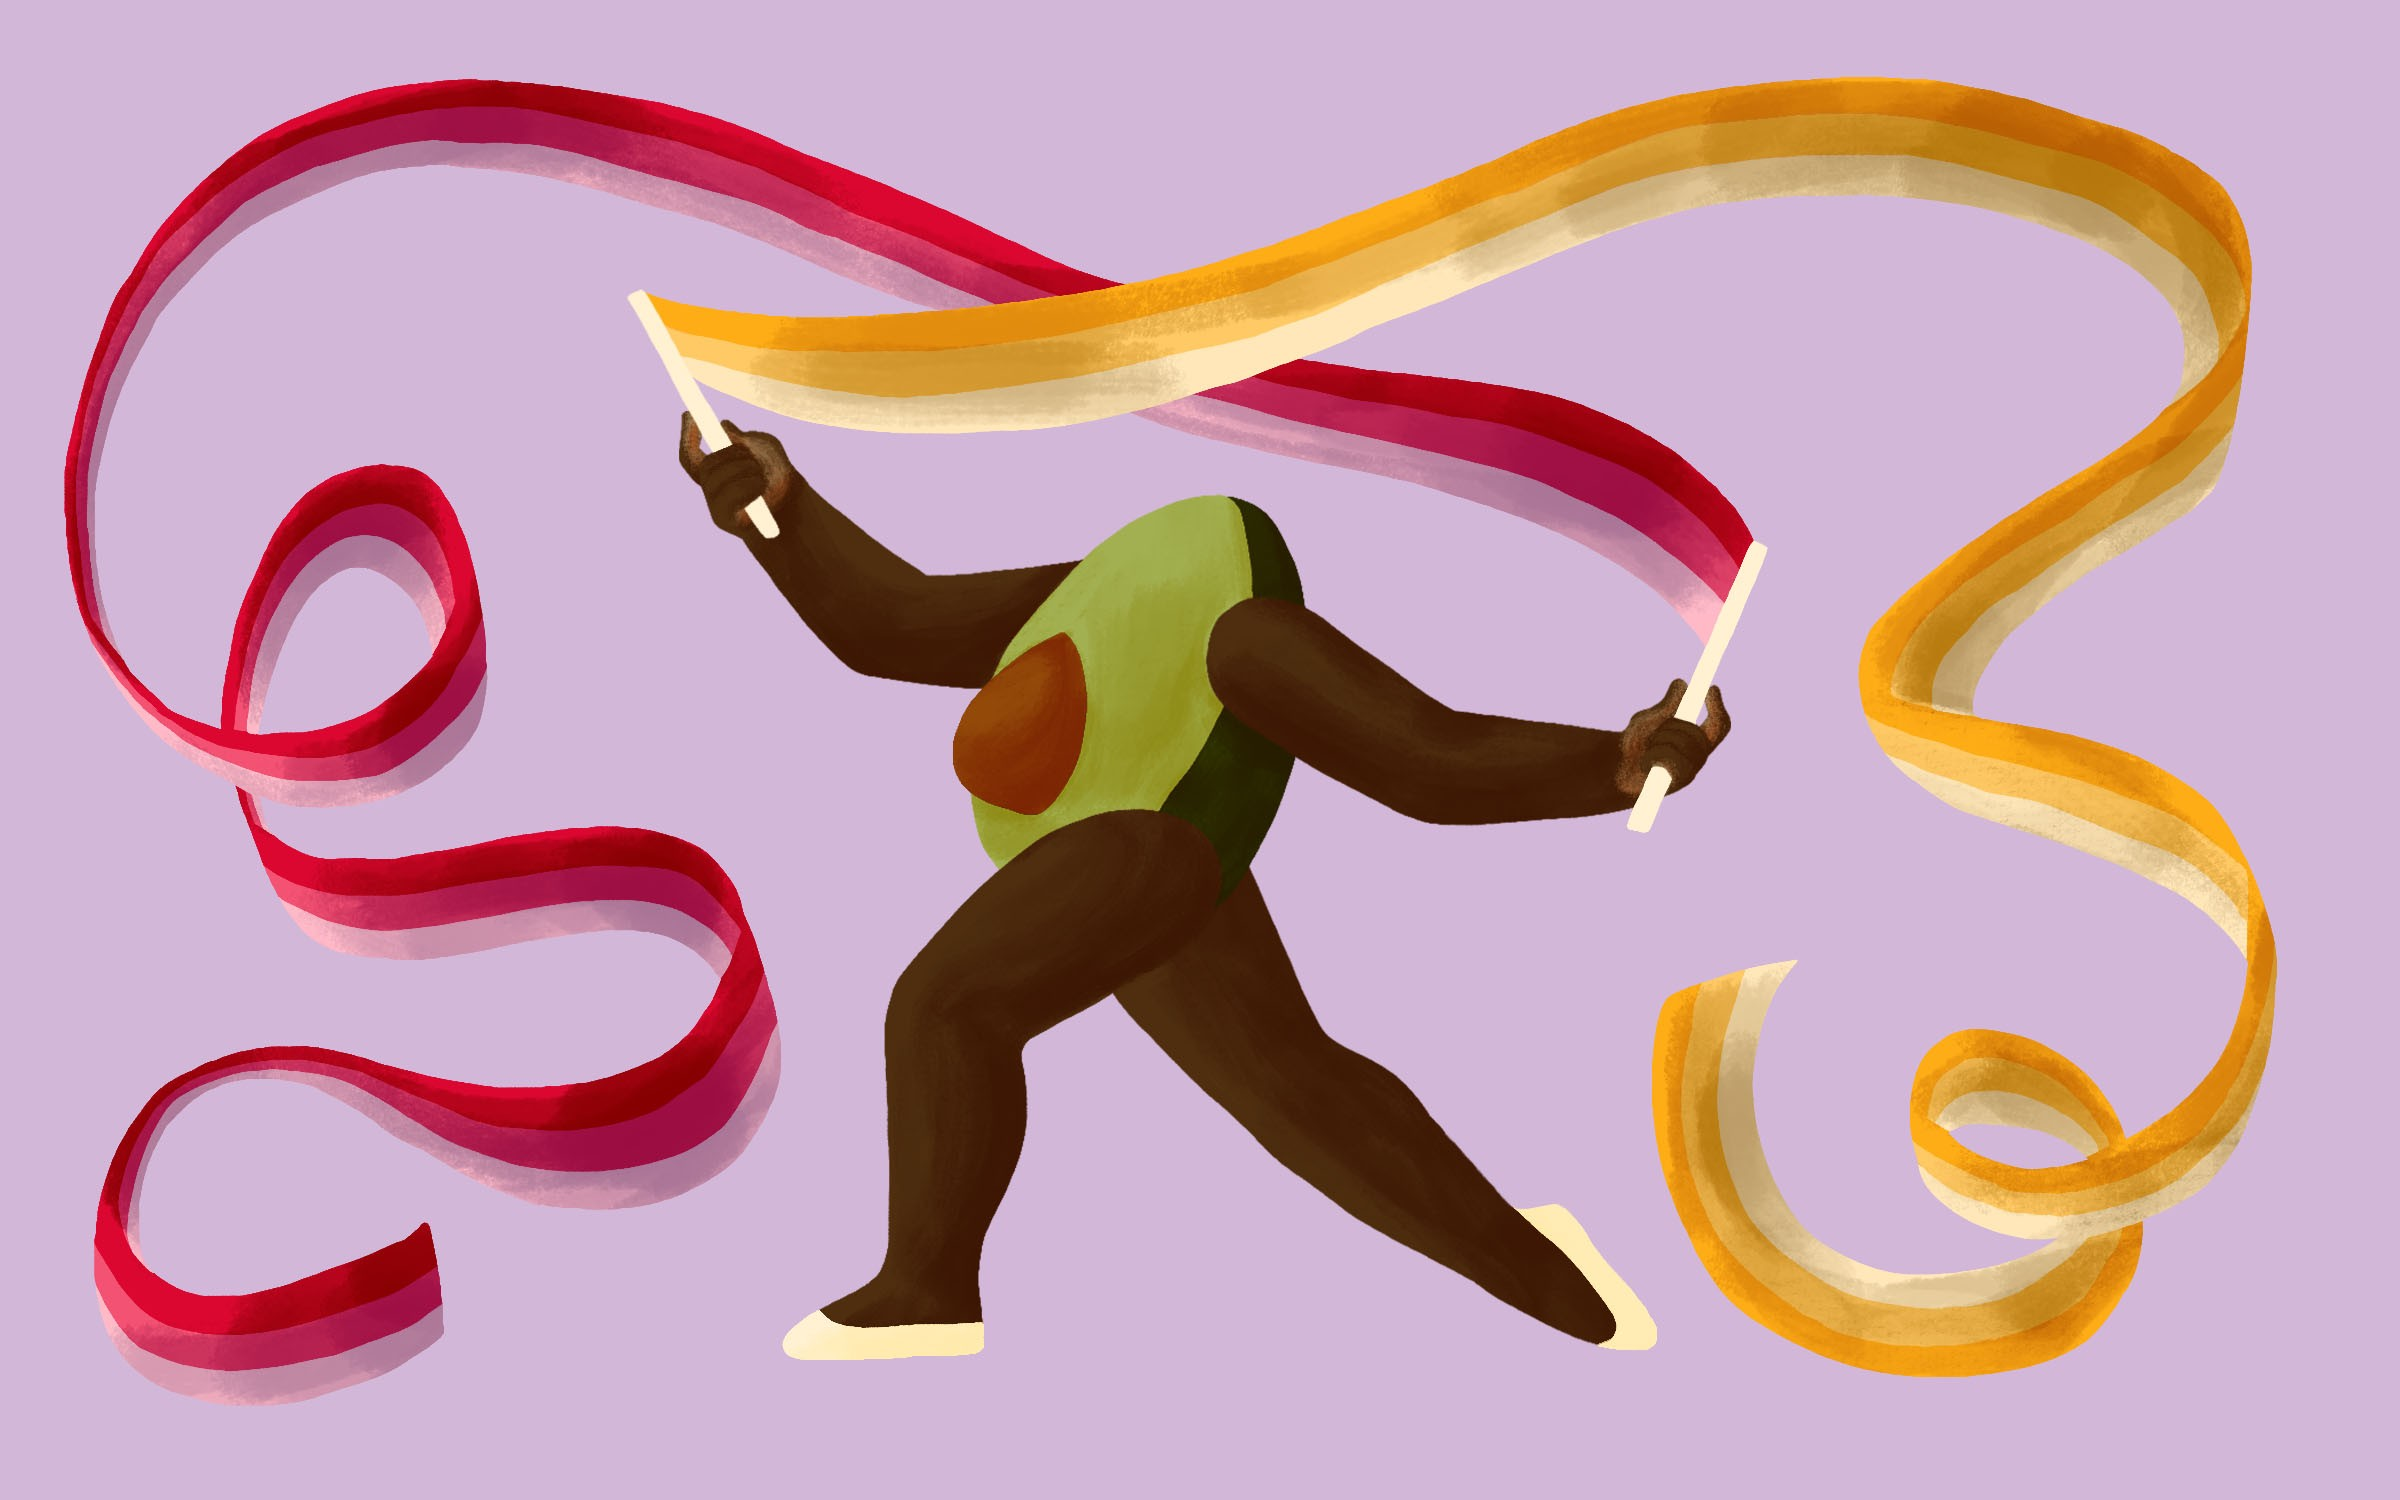 An avocado with arms and legs is dancing with a long swirling ribbon in each hand on a light purple background. The avocado is posed with one leg bent and the other stretched out behind and it's arms are slightly bent and raised out. Each ribbon has three